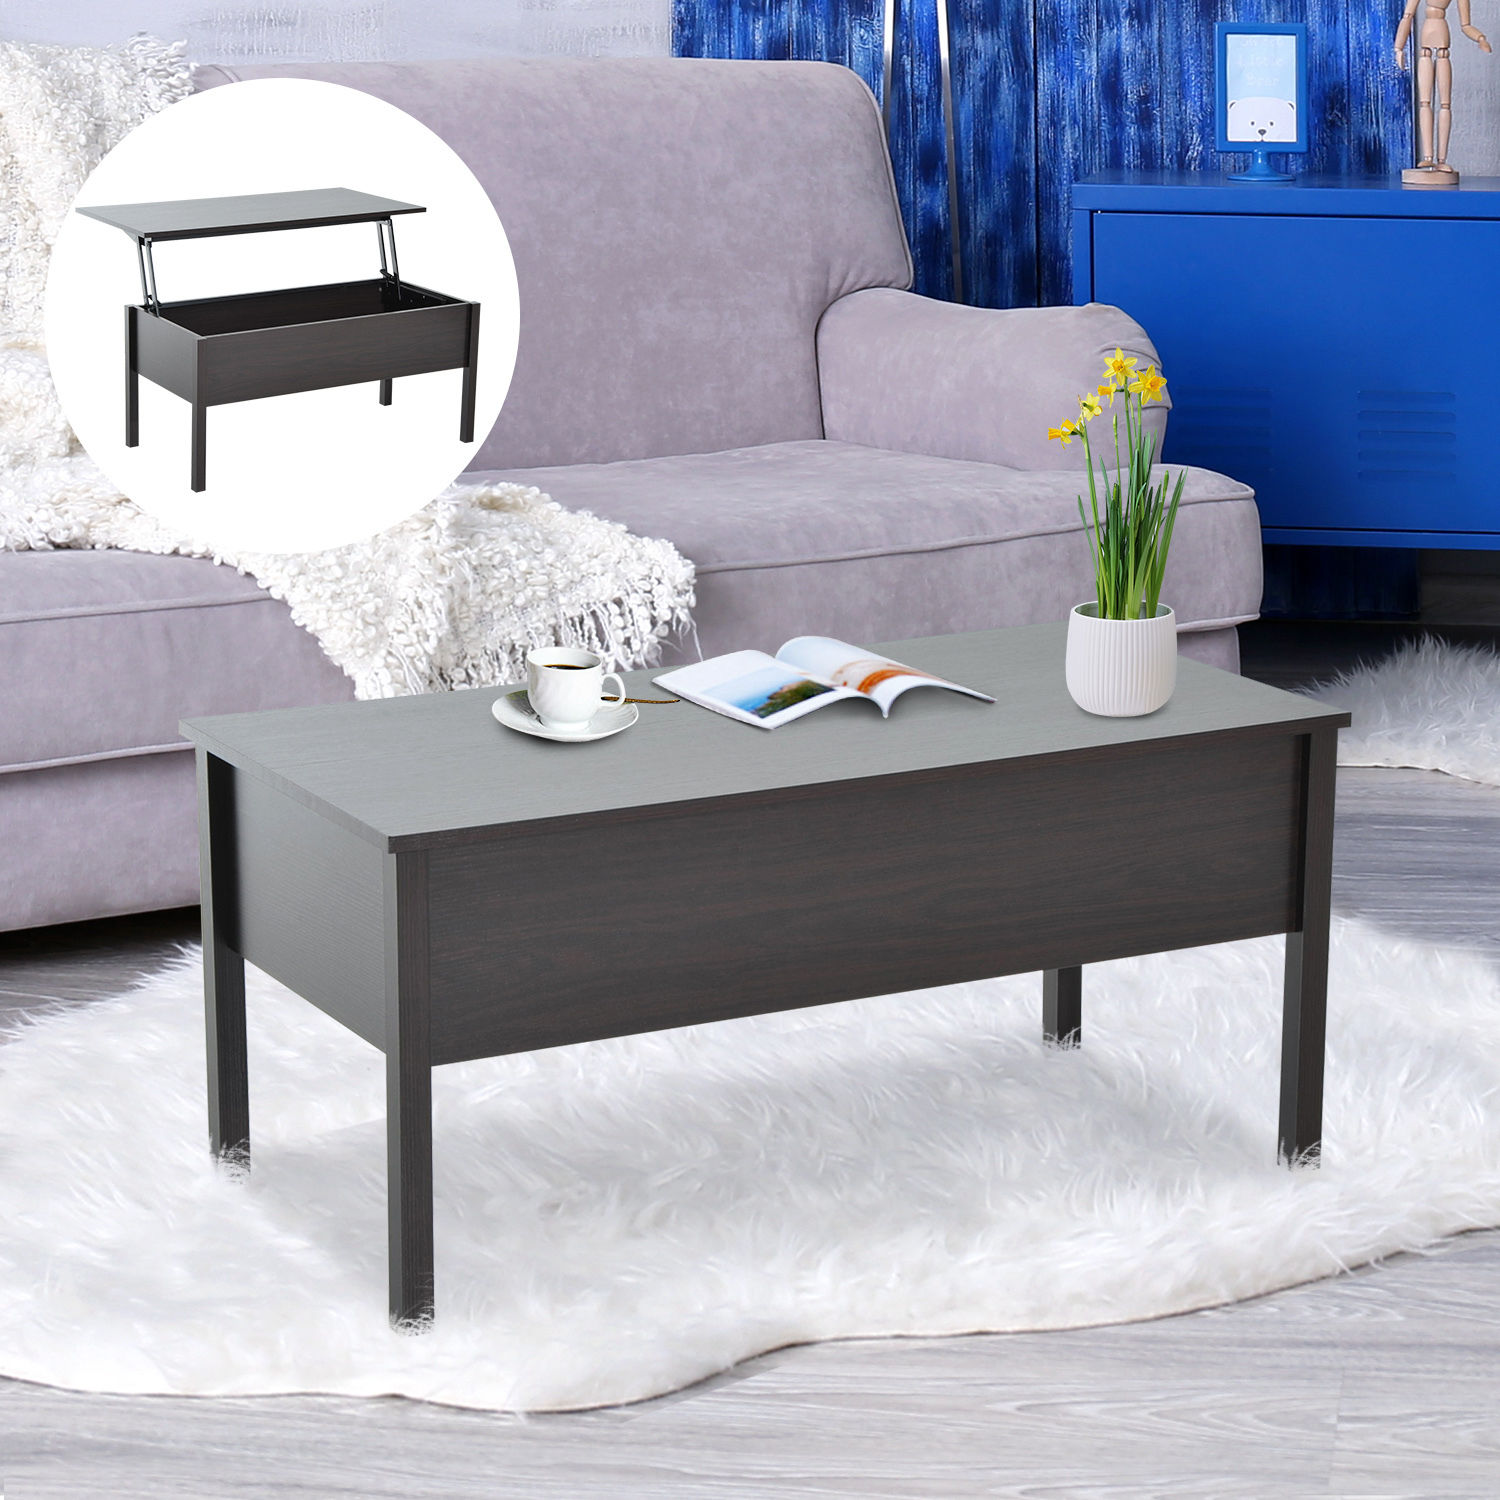 Best Storage Coffee Table: Modern Coffee End Table Lift Top With Storage Space Living